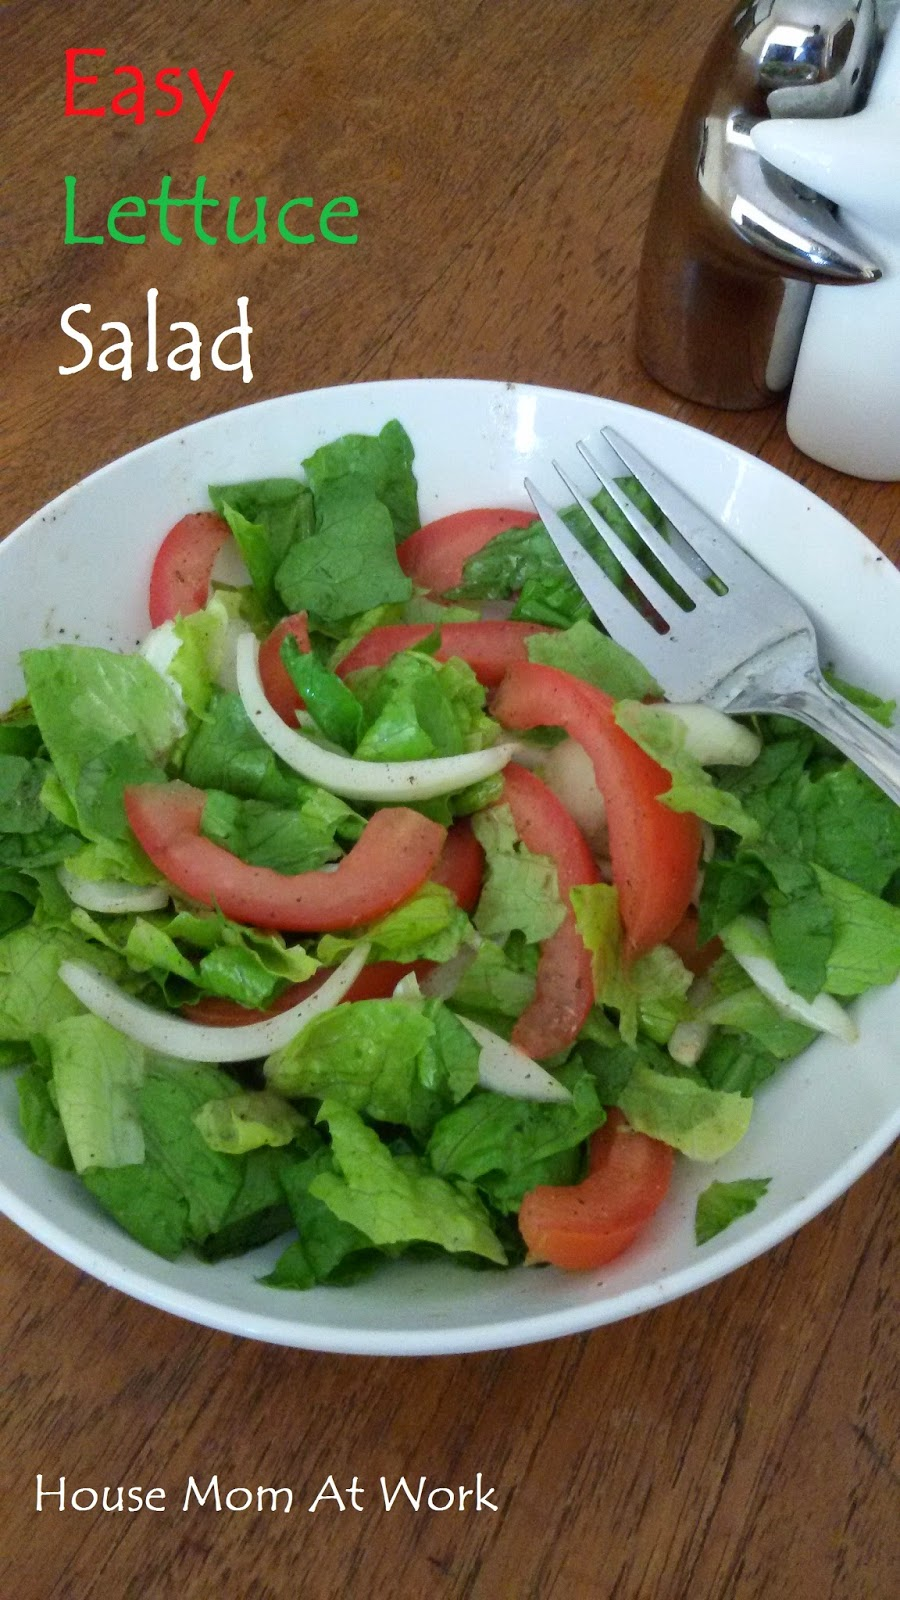 House Mom At Work: Easy Lettuce Salad Recipe